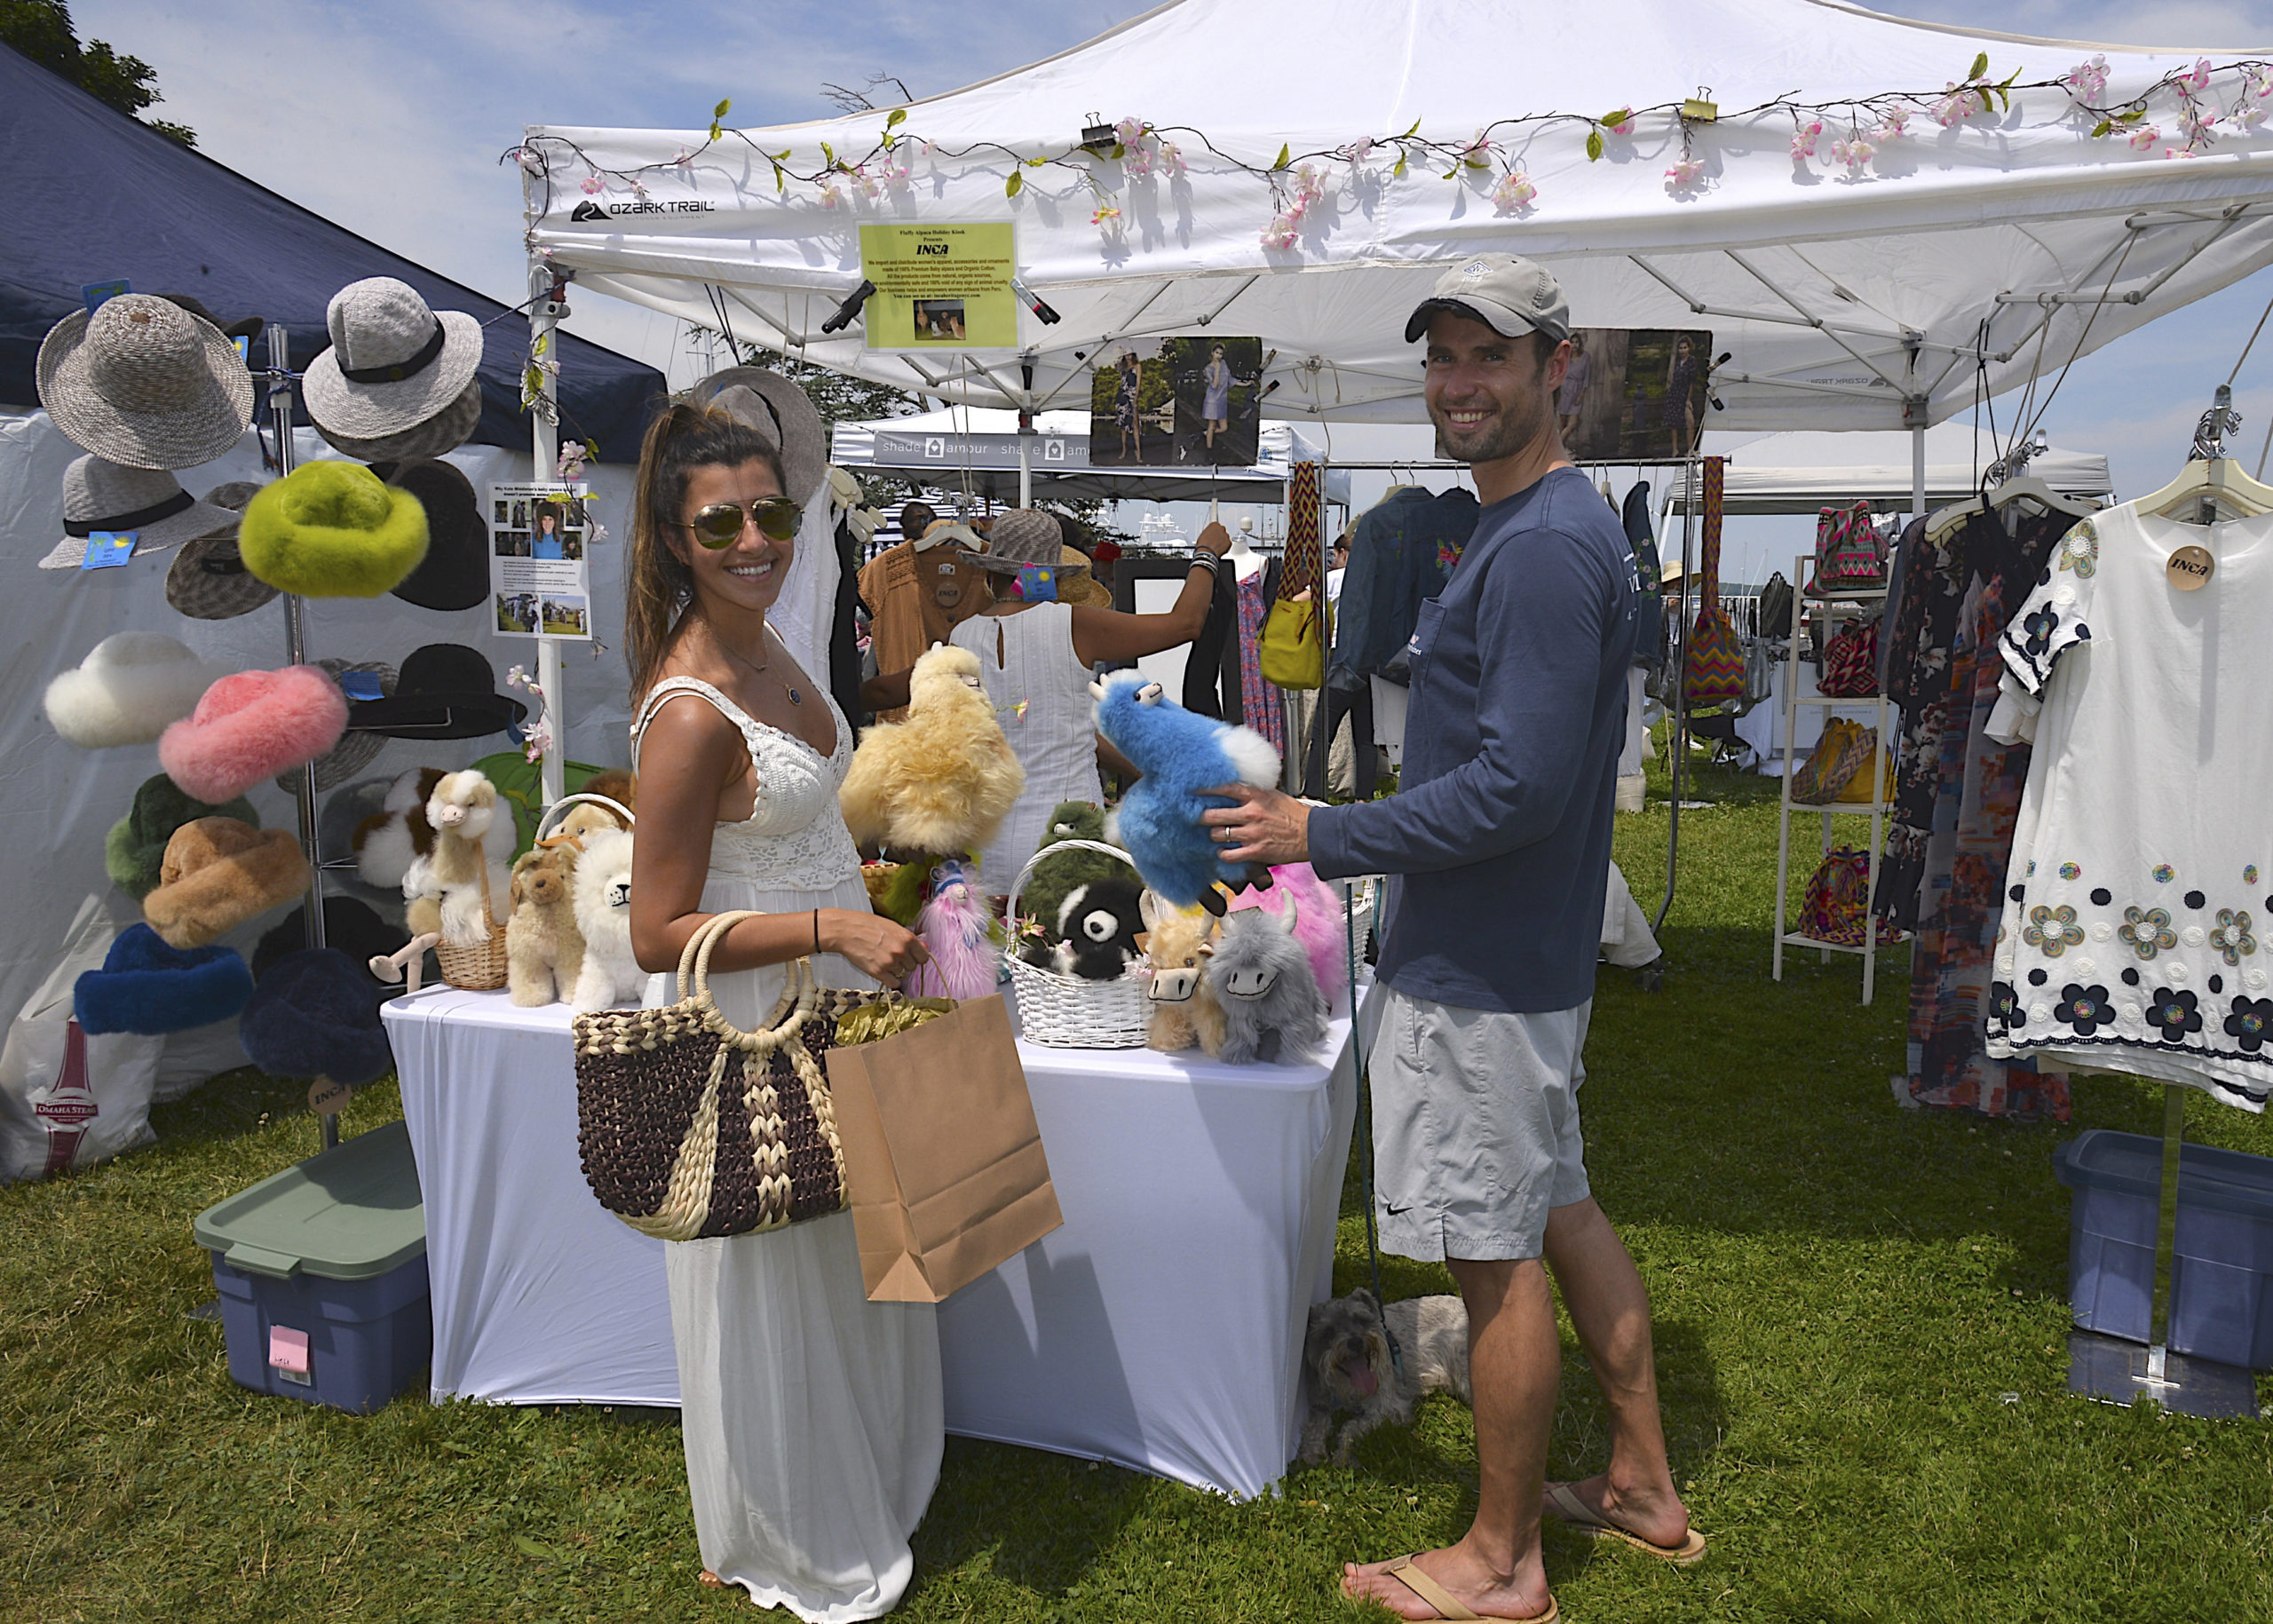 Elle and Chris Petrie at the Sag Harbor Arts and Crafts Fair in Marine Park on Saturday. KYRIL BROMELY